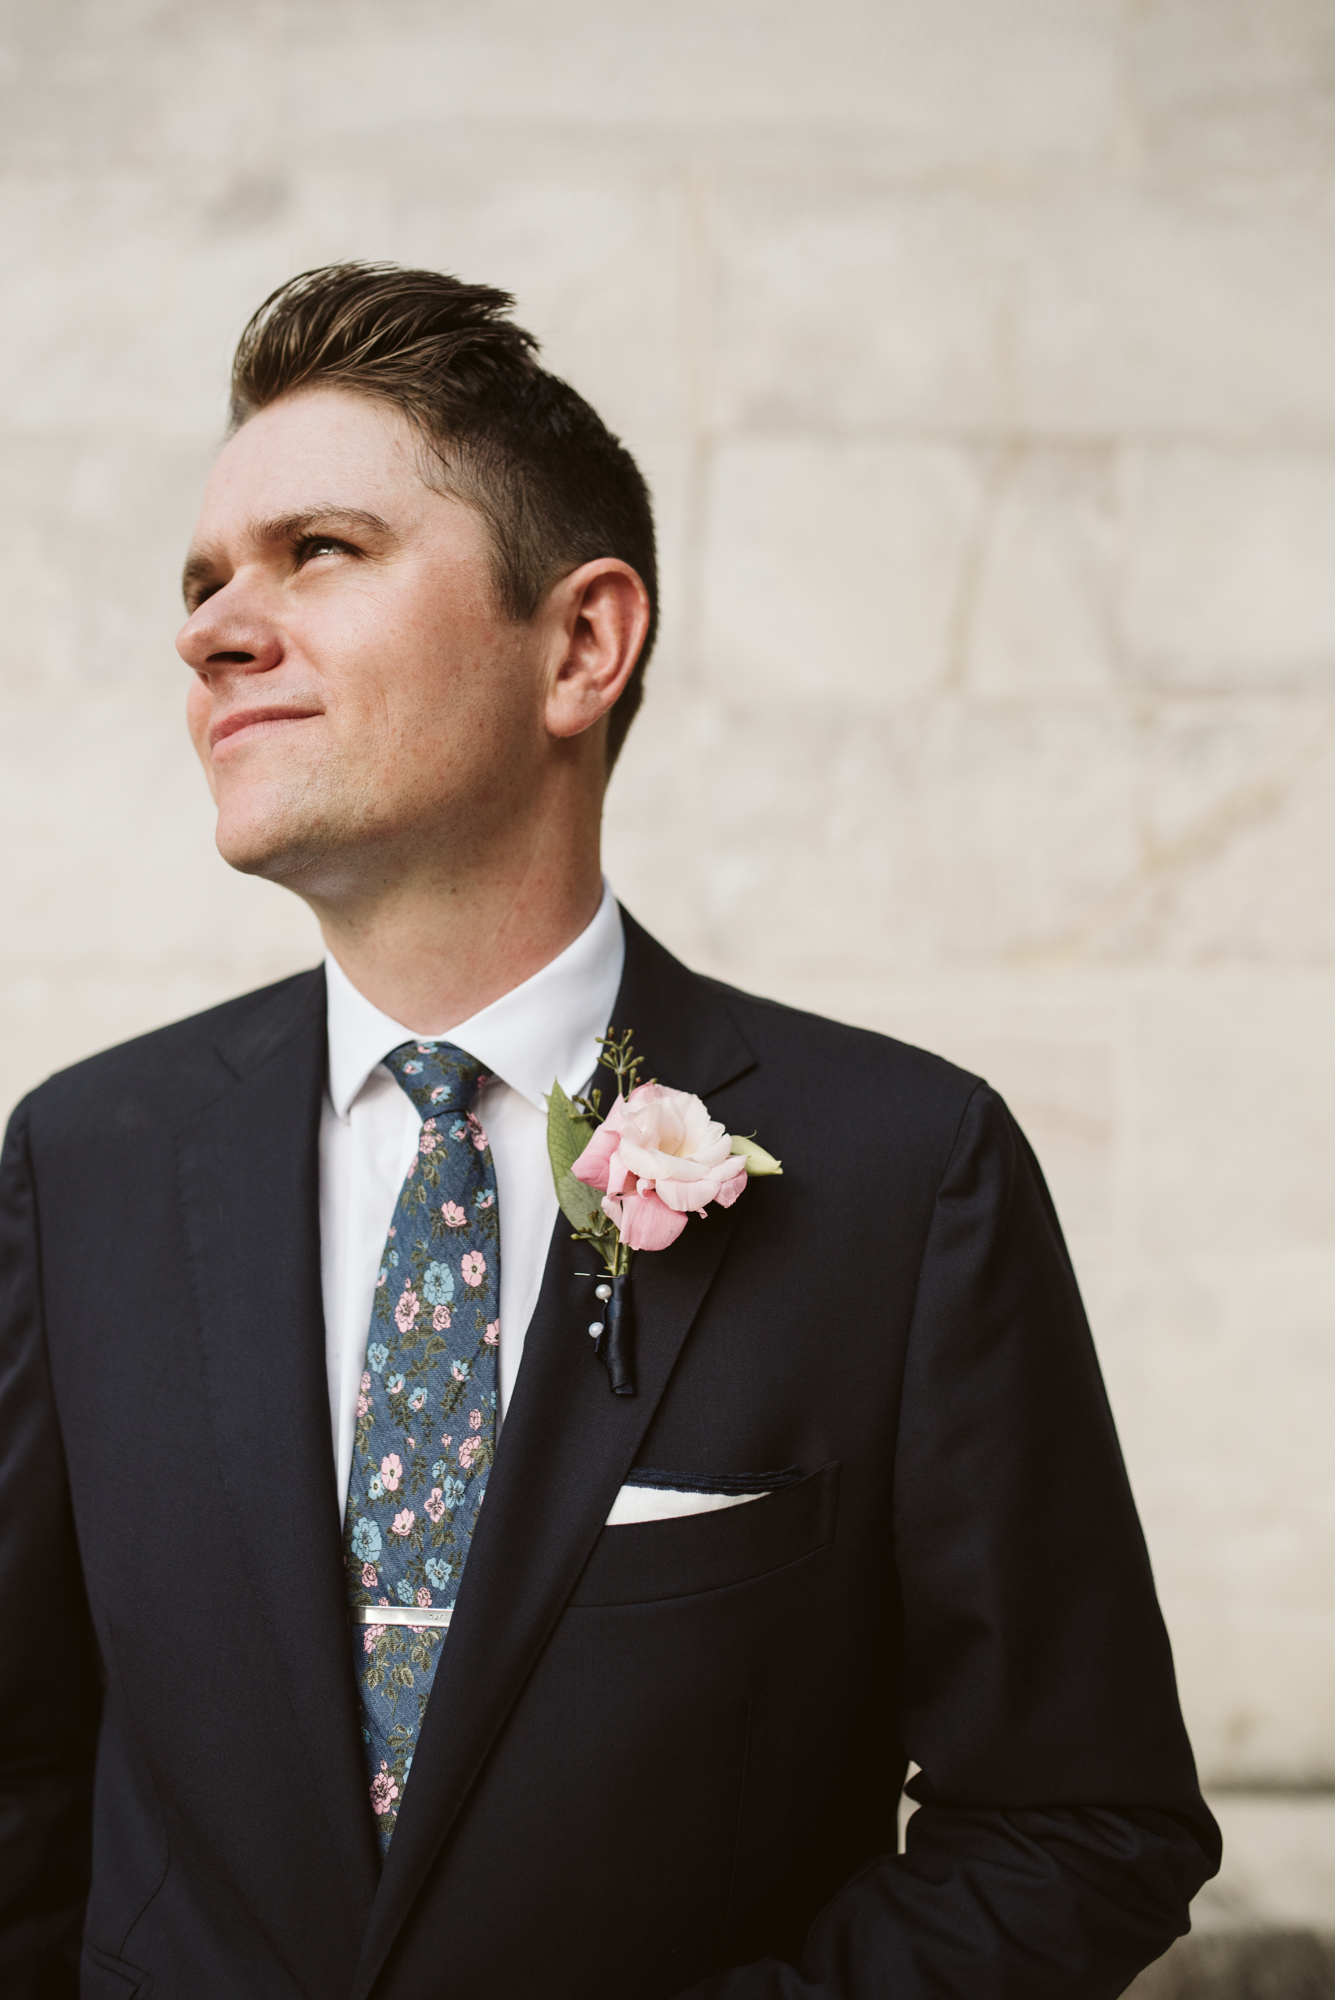 Pop-up Ceremony, Outdoor Wedding, Casual, Simple, Lake Roland, Baltimore, Maryland Wedding Photographer, Laid Back, Groom Portrait, Bonobos Tie, Suit Supply, DIY Flowers